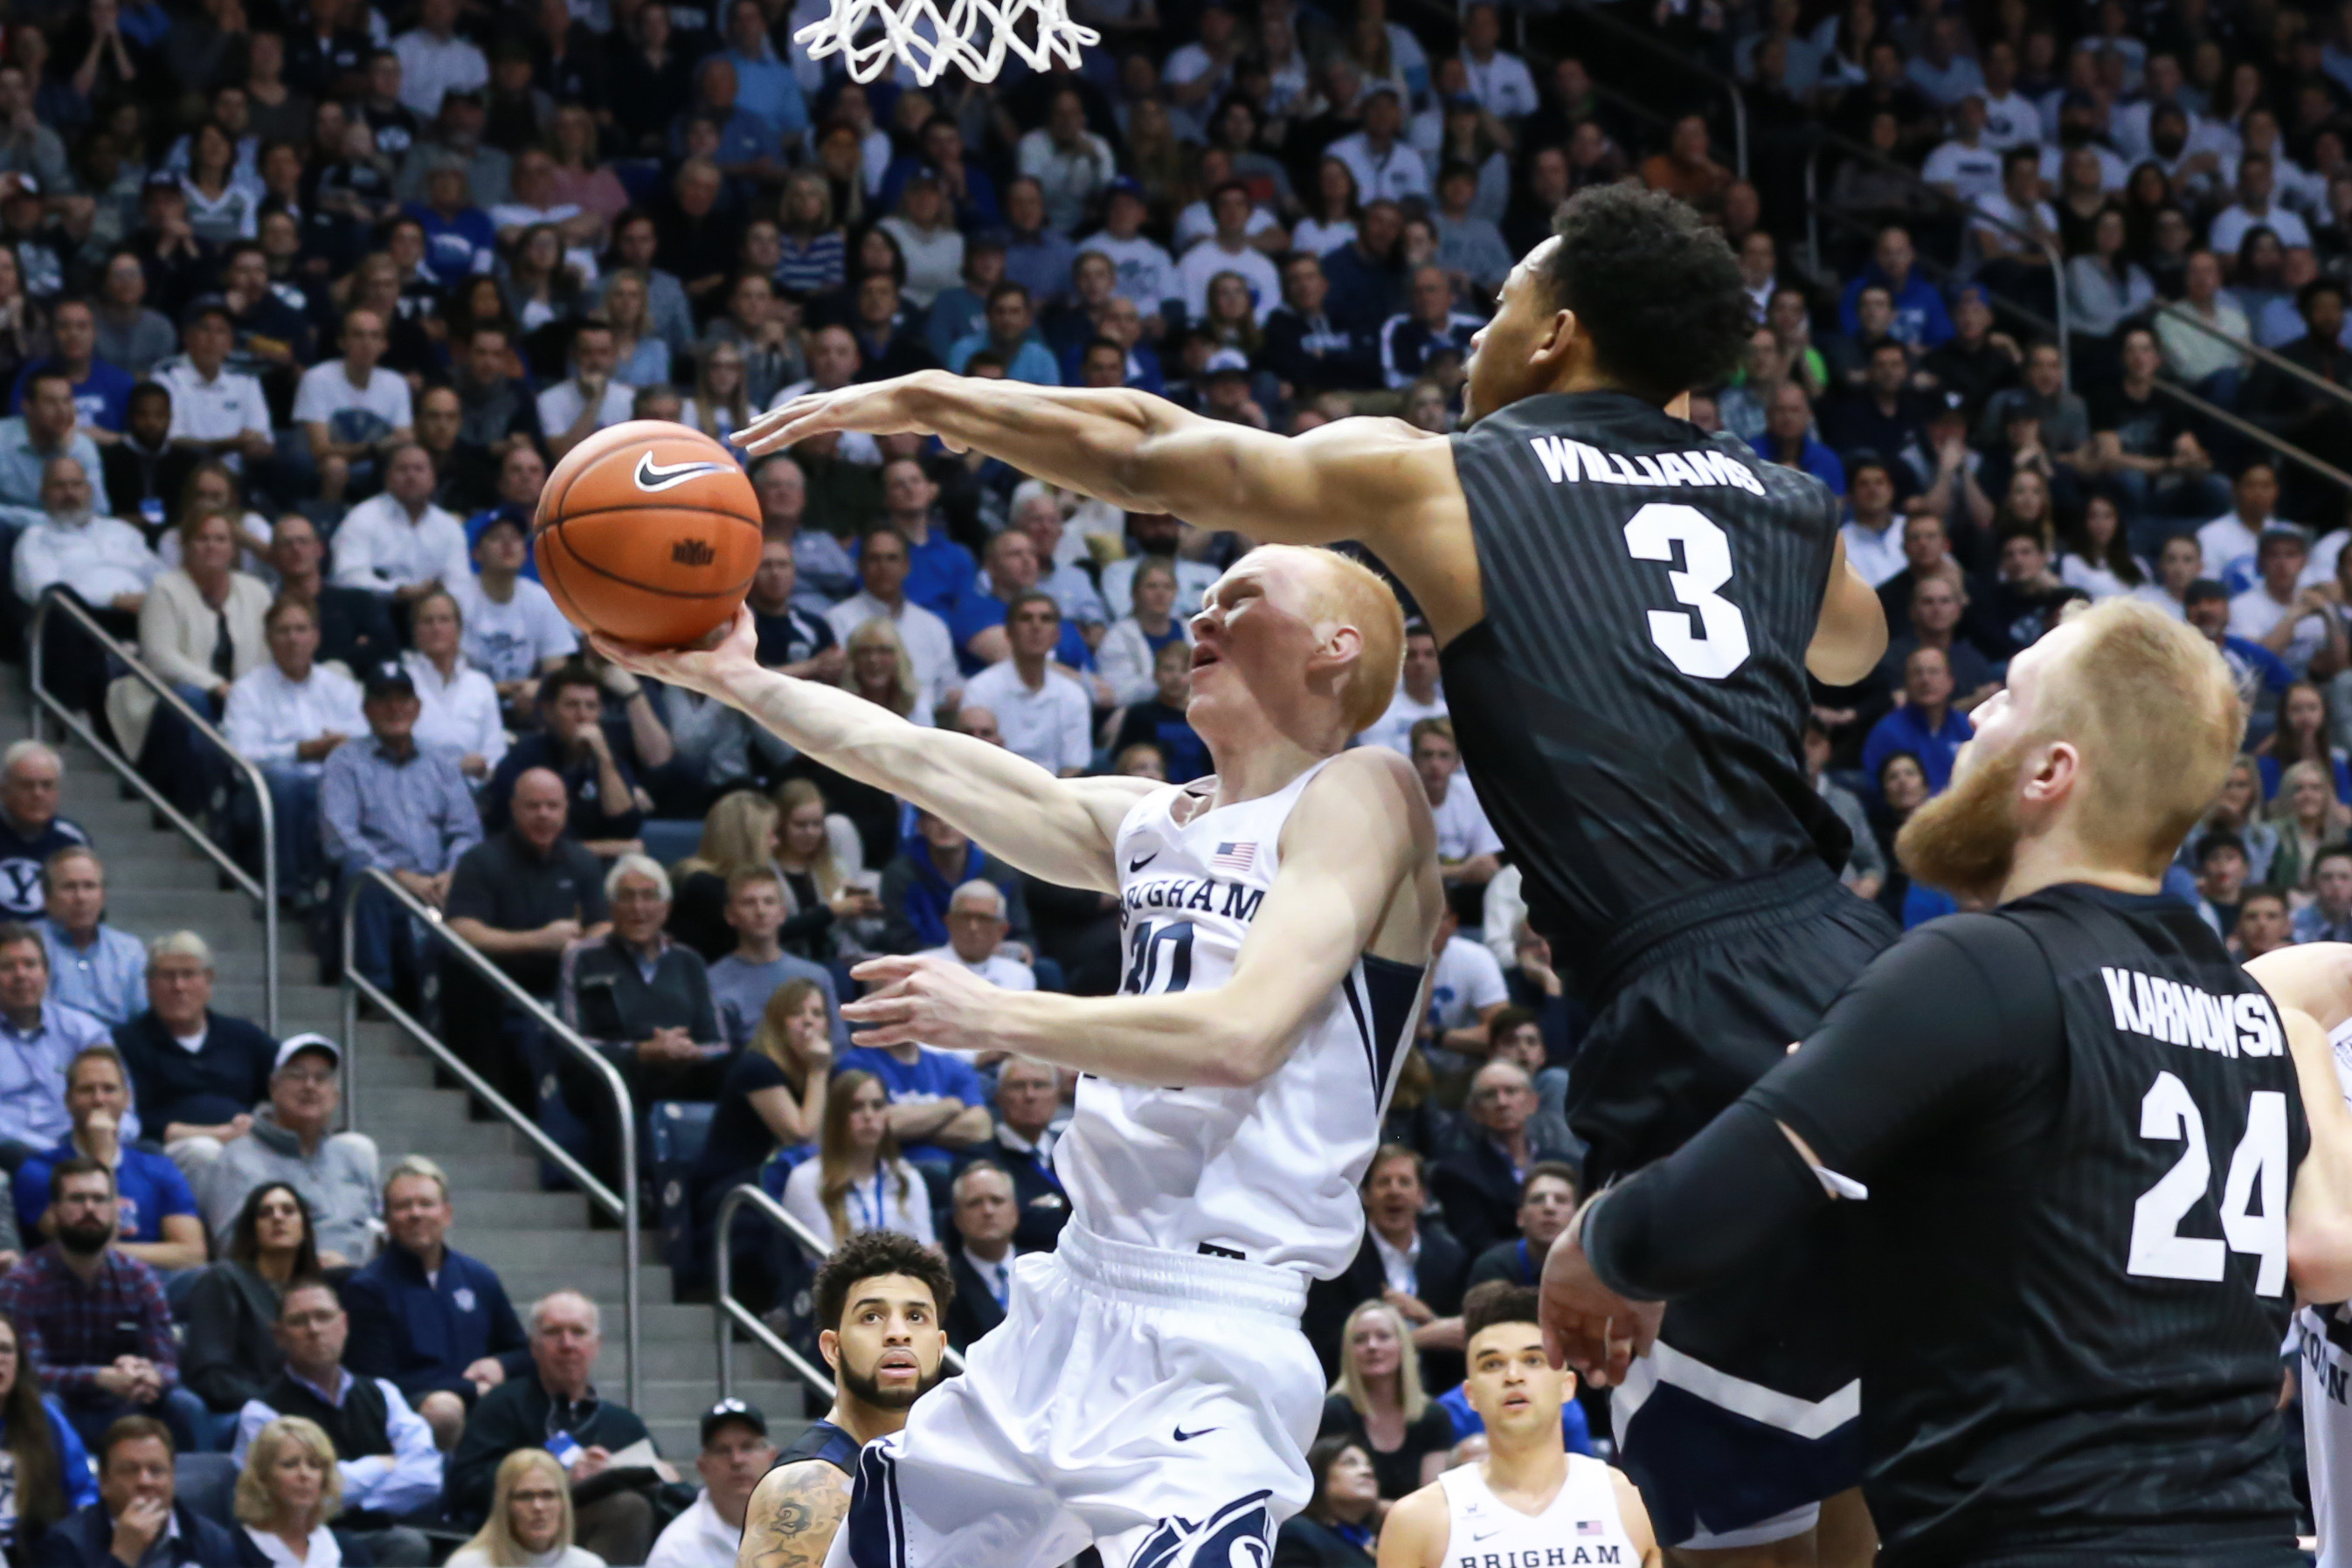 Feb 2, 2017; Provo, UT, USA; Brigham Young Cougars guard TJ Haws (30) is fouled by Gonzaga Bulldogs forward Johnathan Williams (3) while shooting during the second half at Marriott Center. The Bulldogs won 85-75. Mandatory Credit: Chris Nicoll-USA TODAY Sports